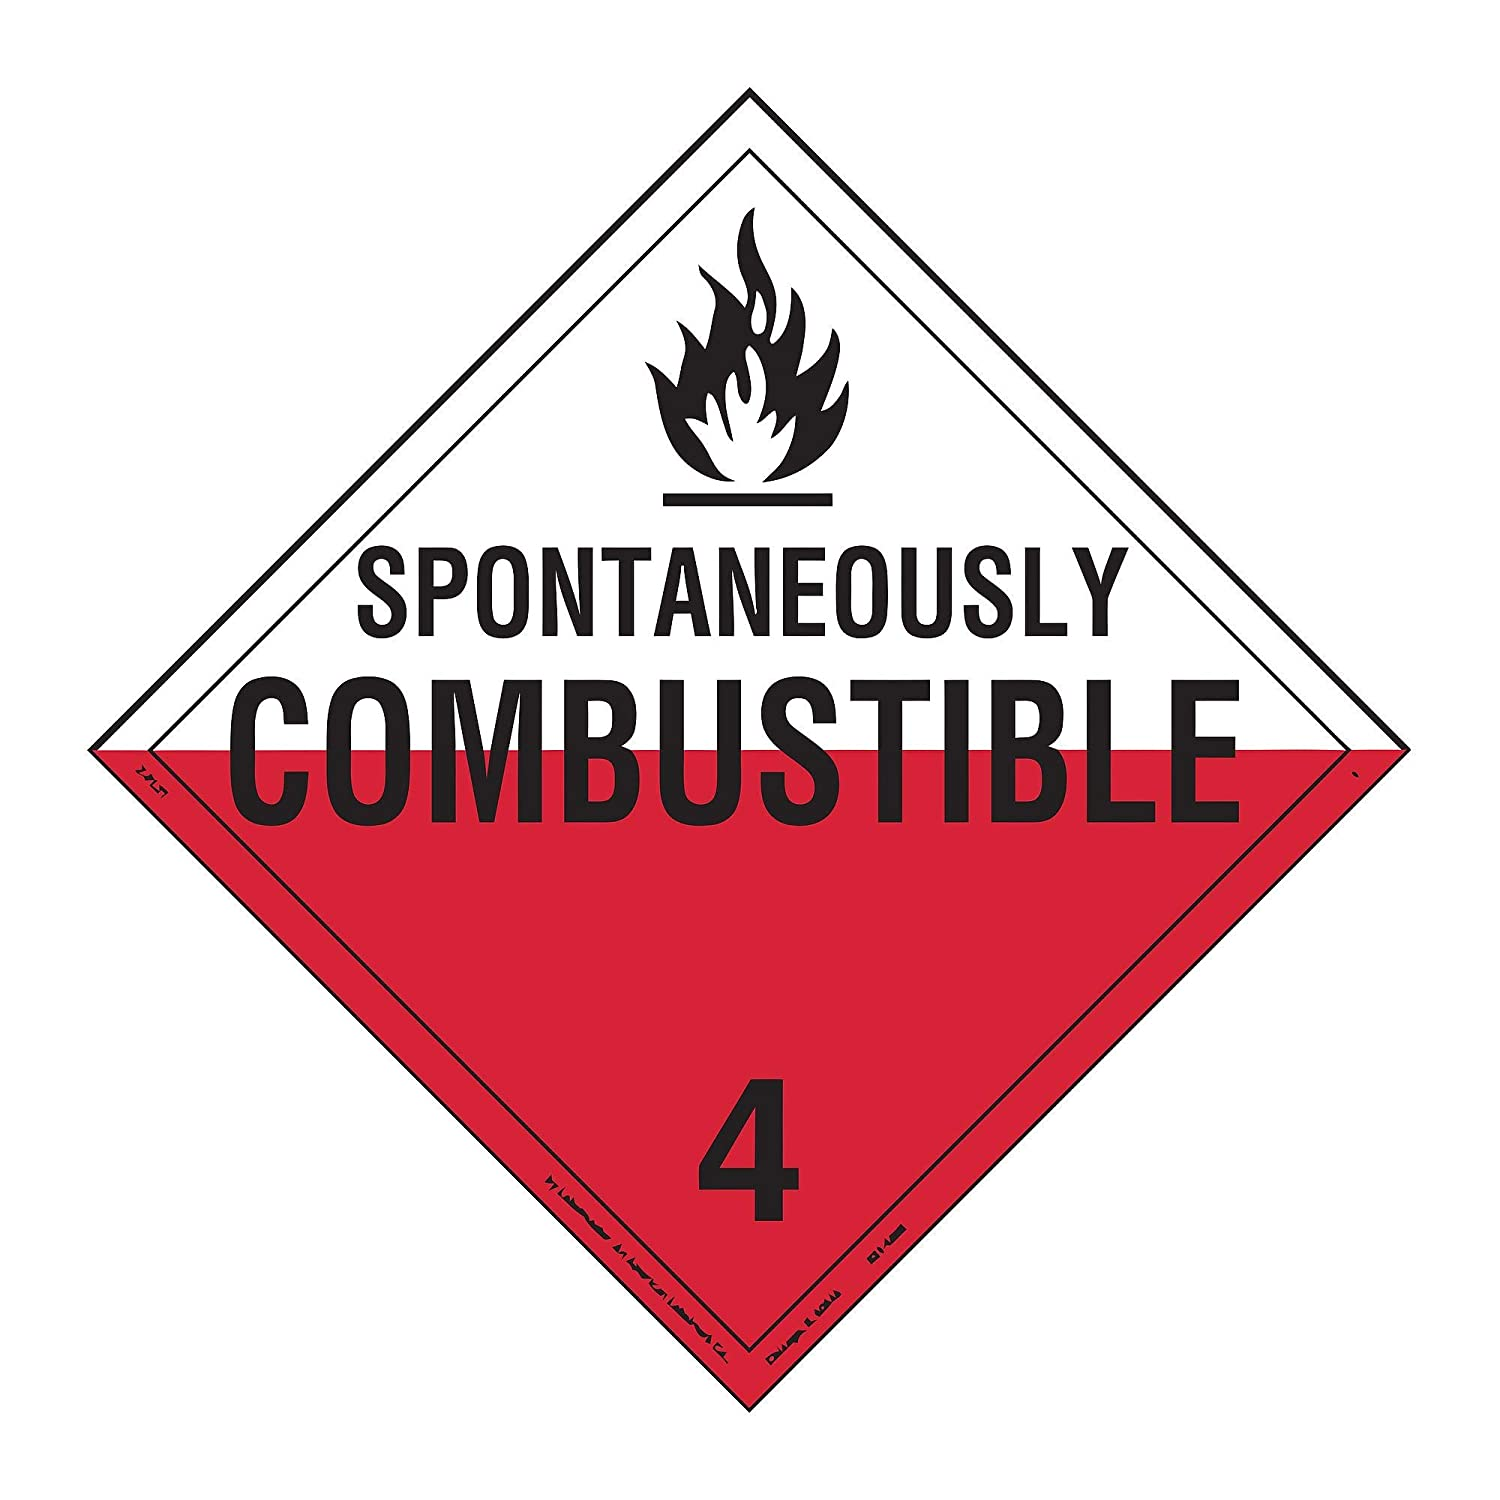 Labelmaster Z-PVE Spontaneously Combustible Hazmat Placard, Worded, Permanent Vinyl (Pack of 25)